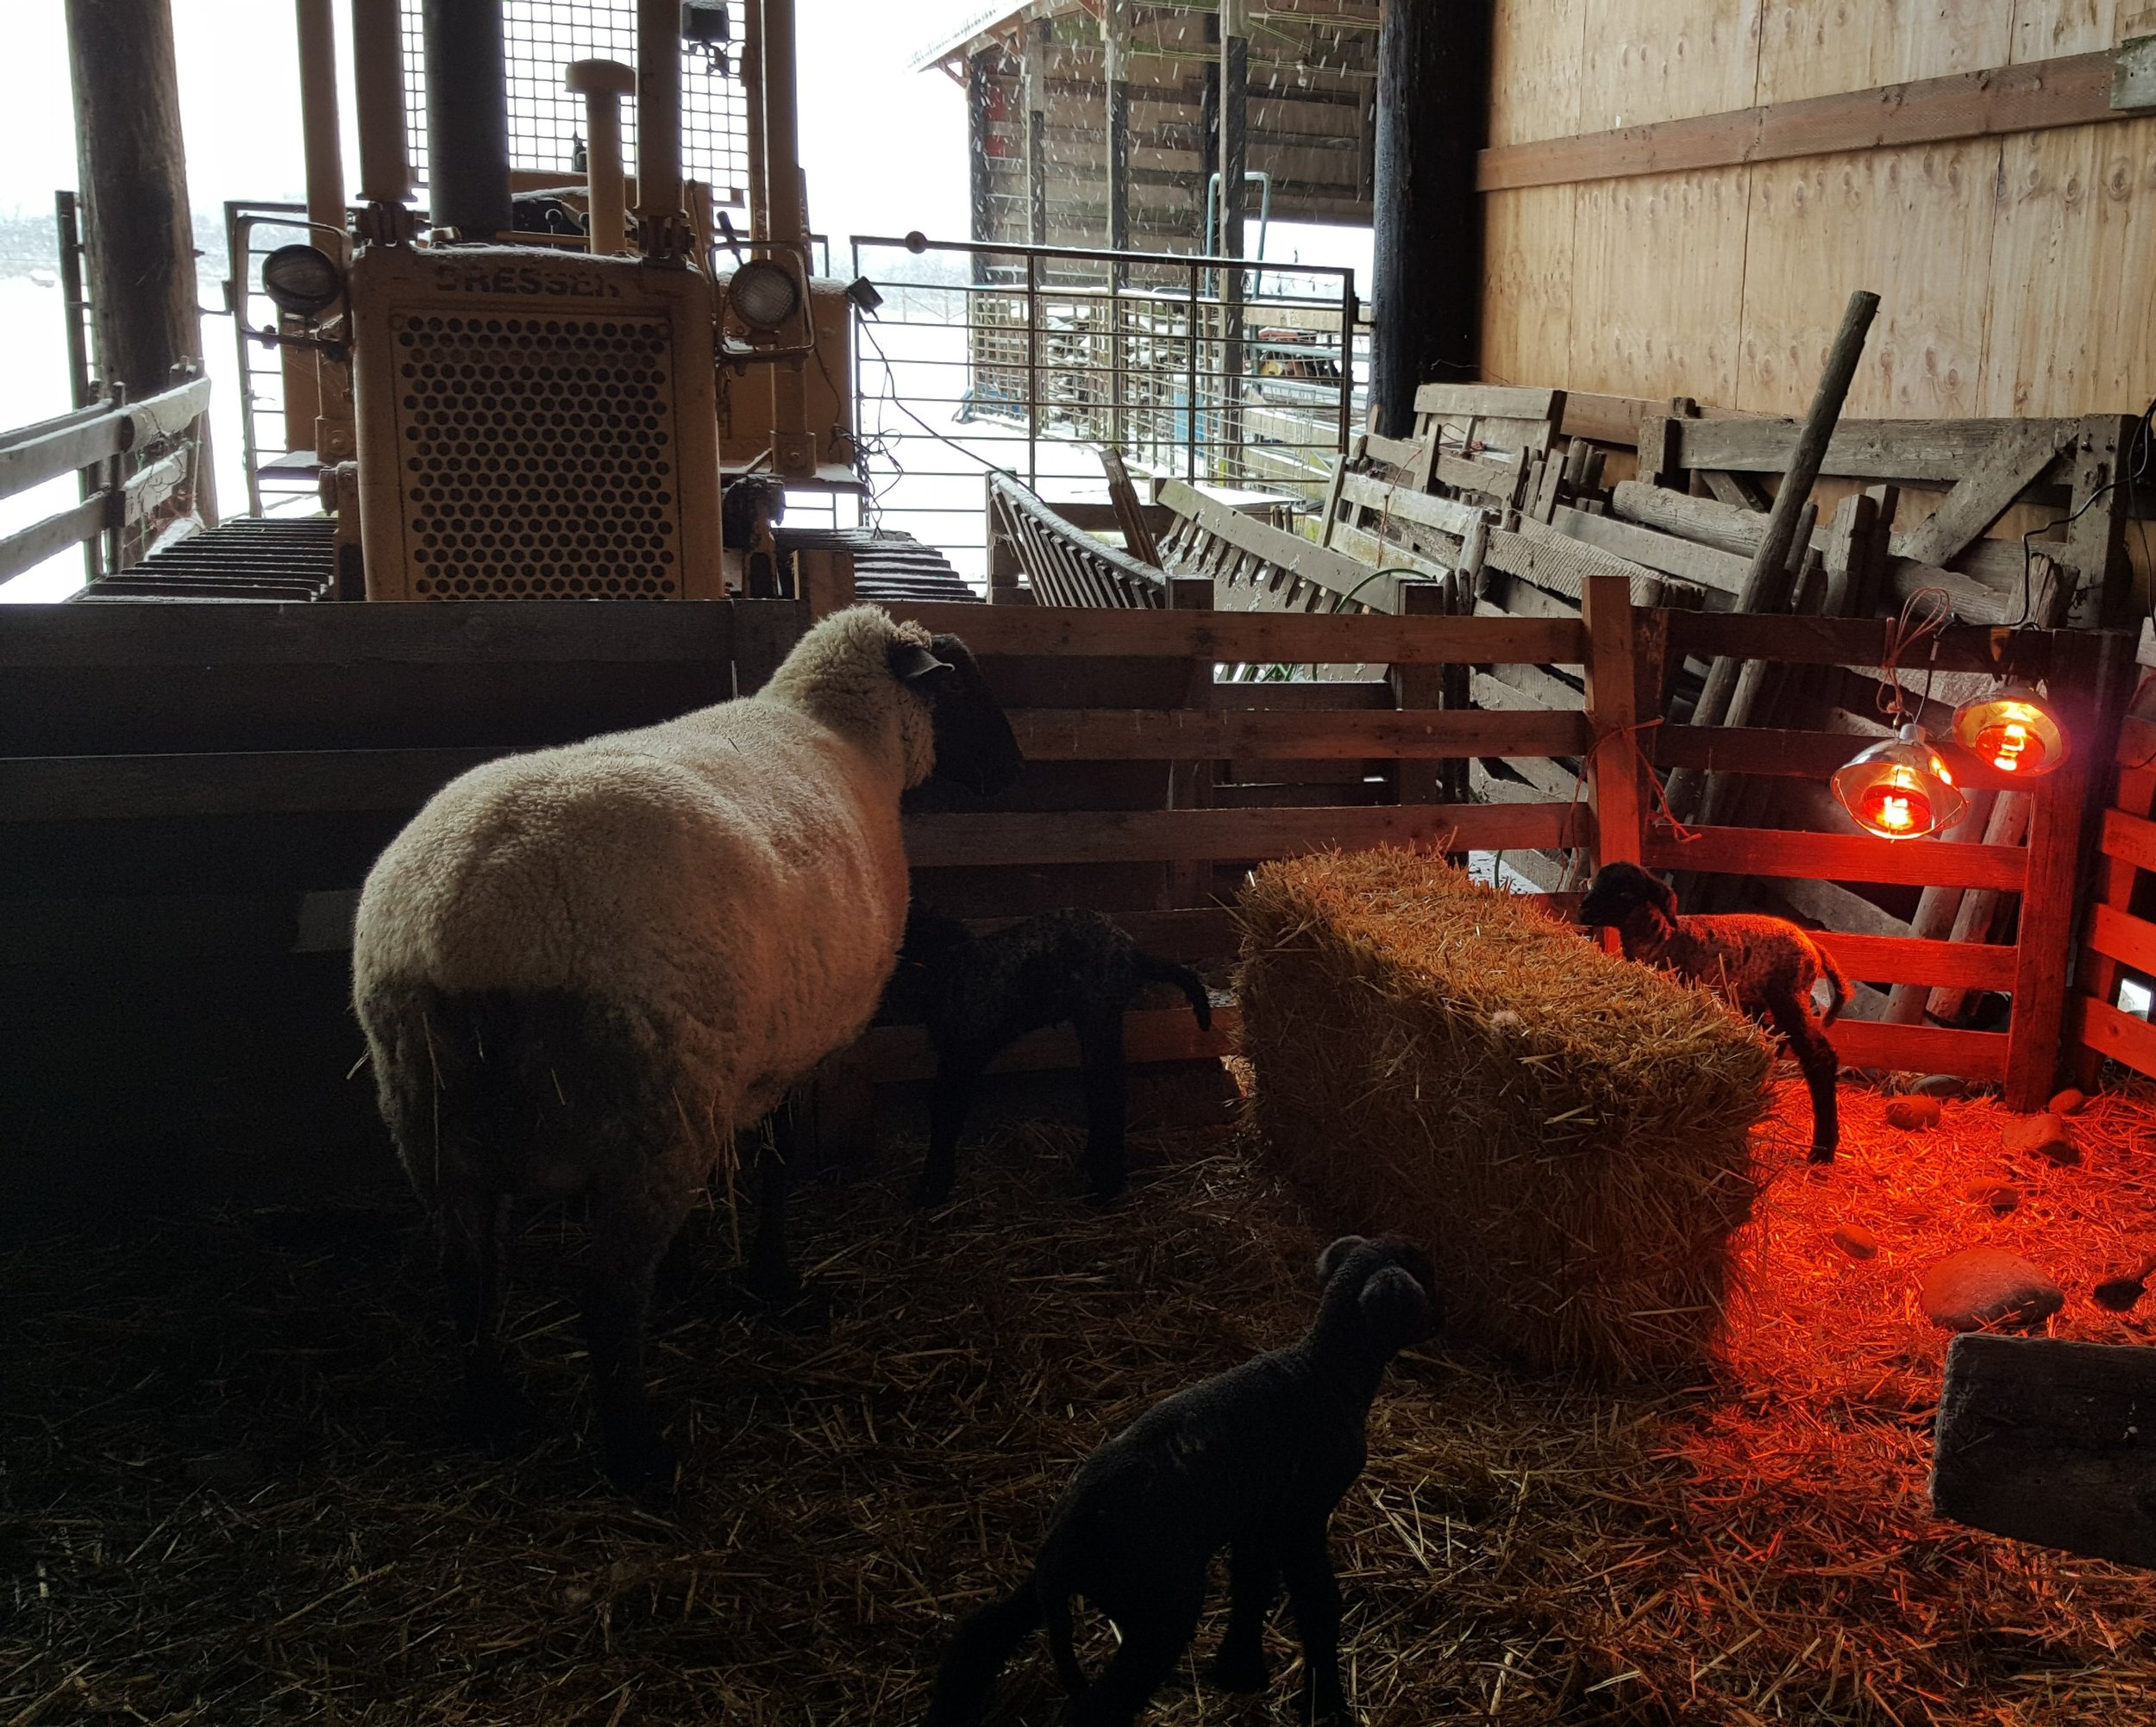 2017 brought frigid temperatures for two weeks. Here we are using a heat lamp to keep triplets warm after birth.